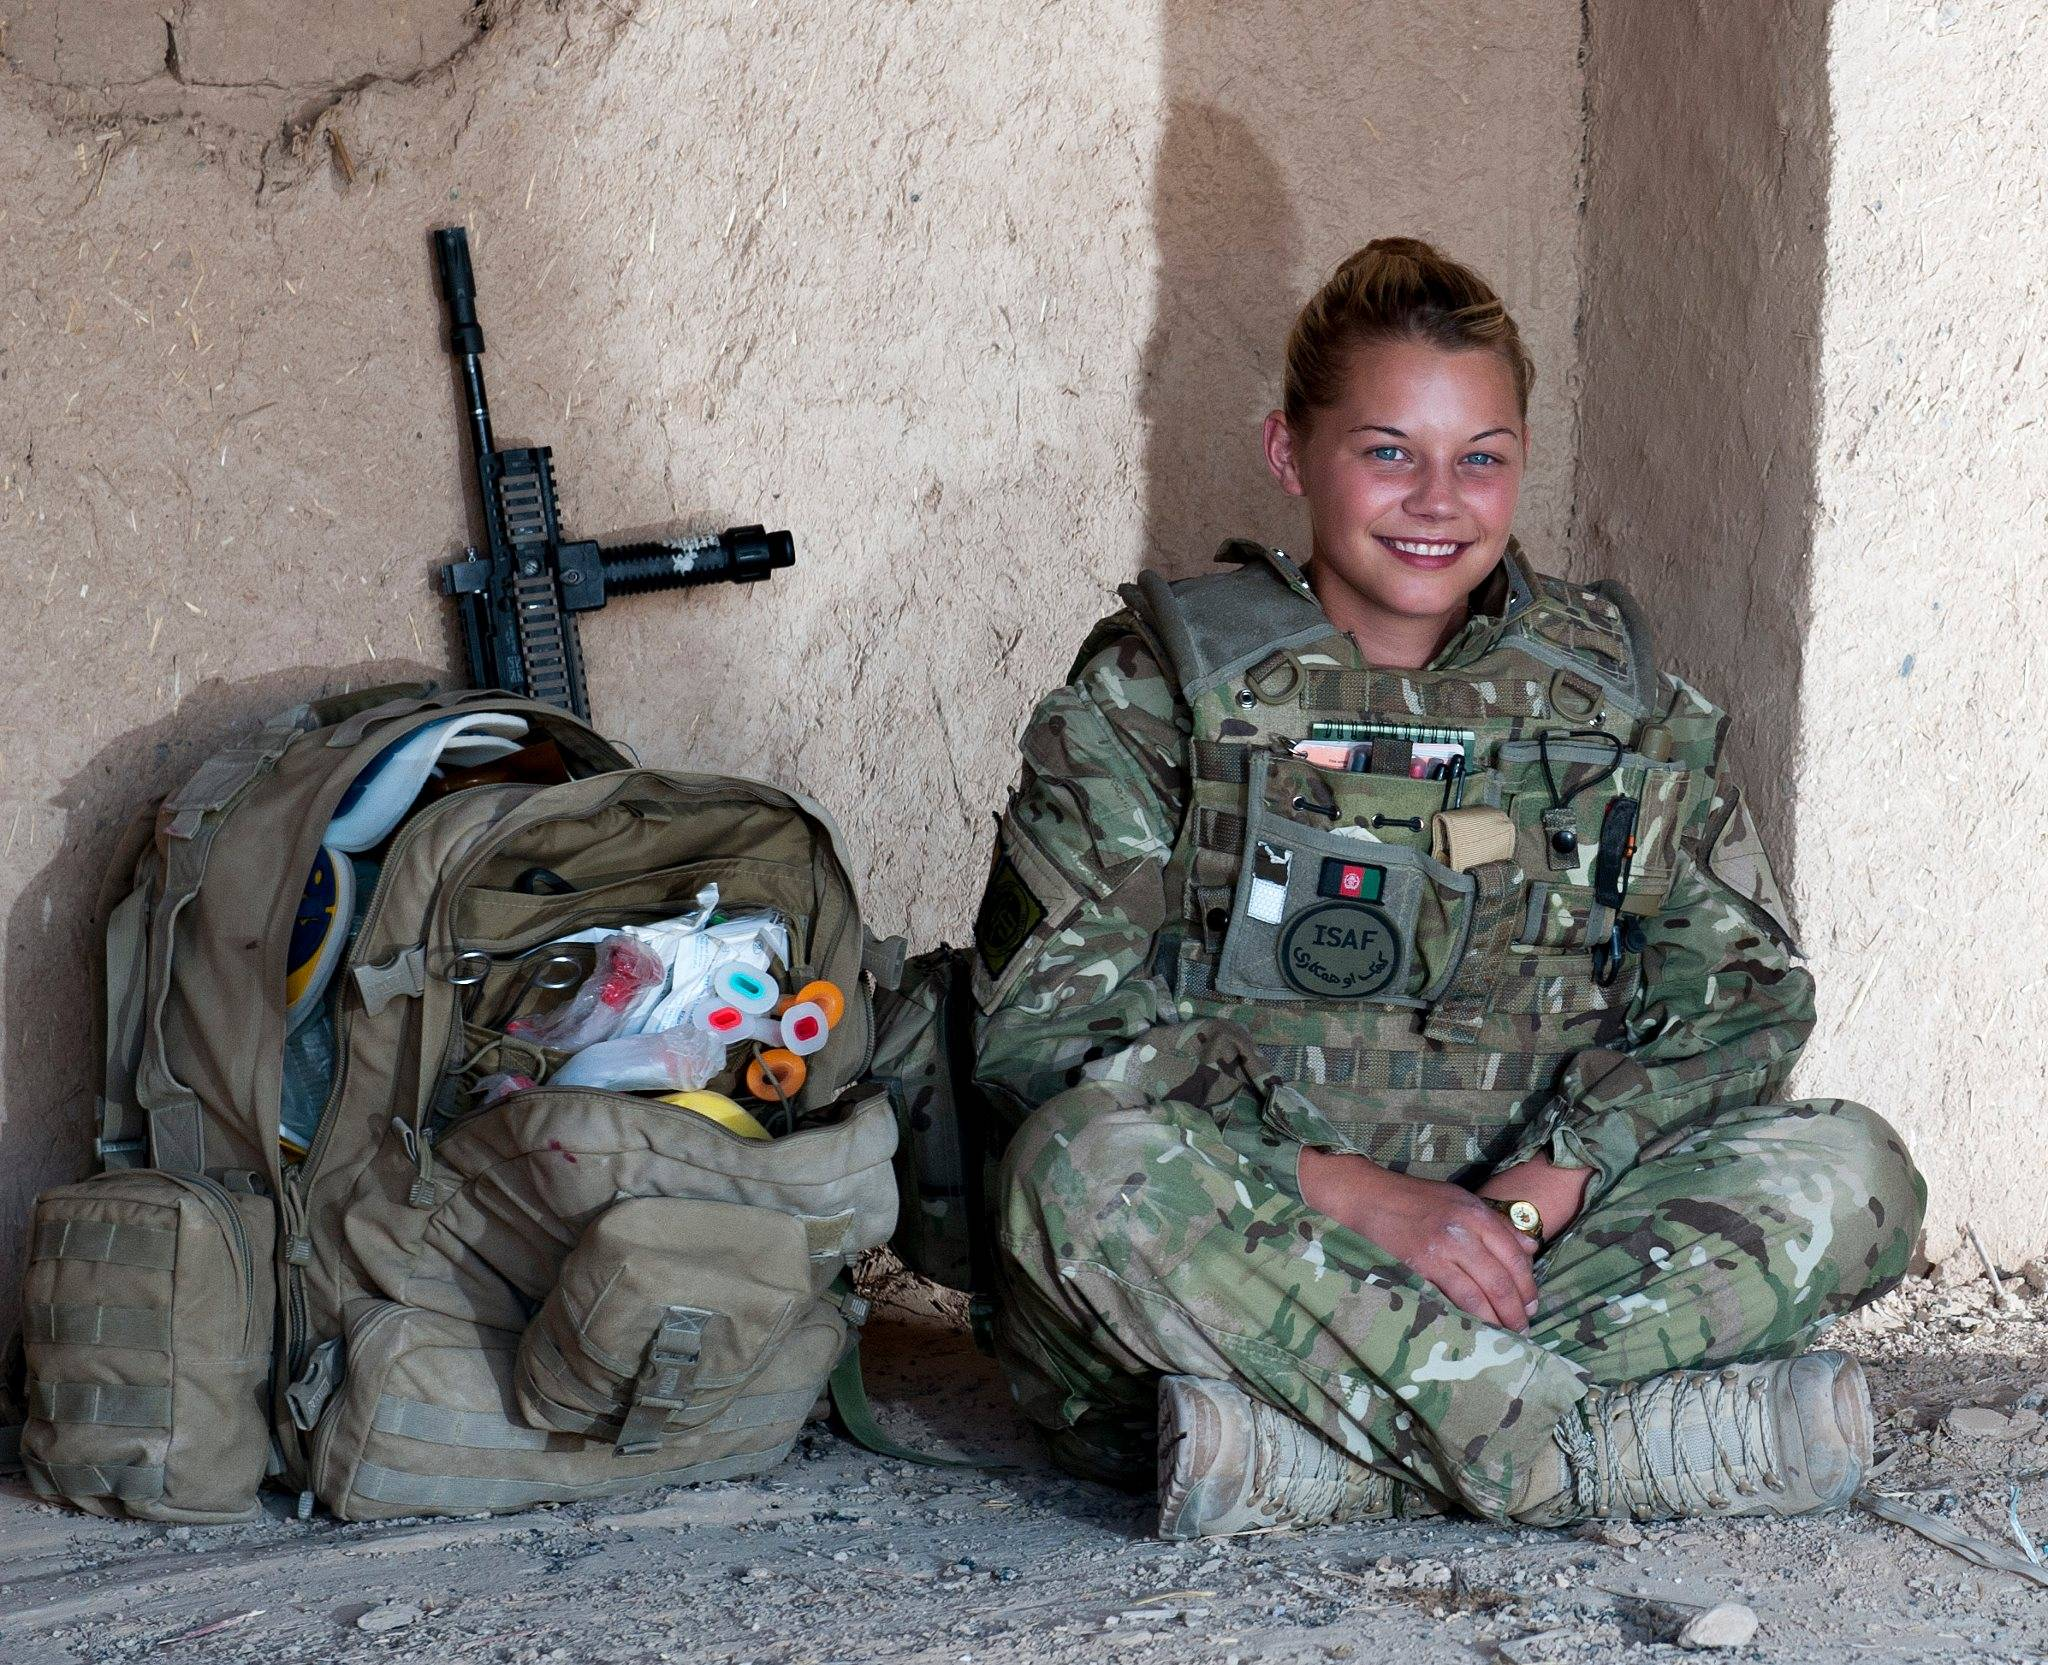 British Army combat medic in Afghanistan